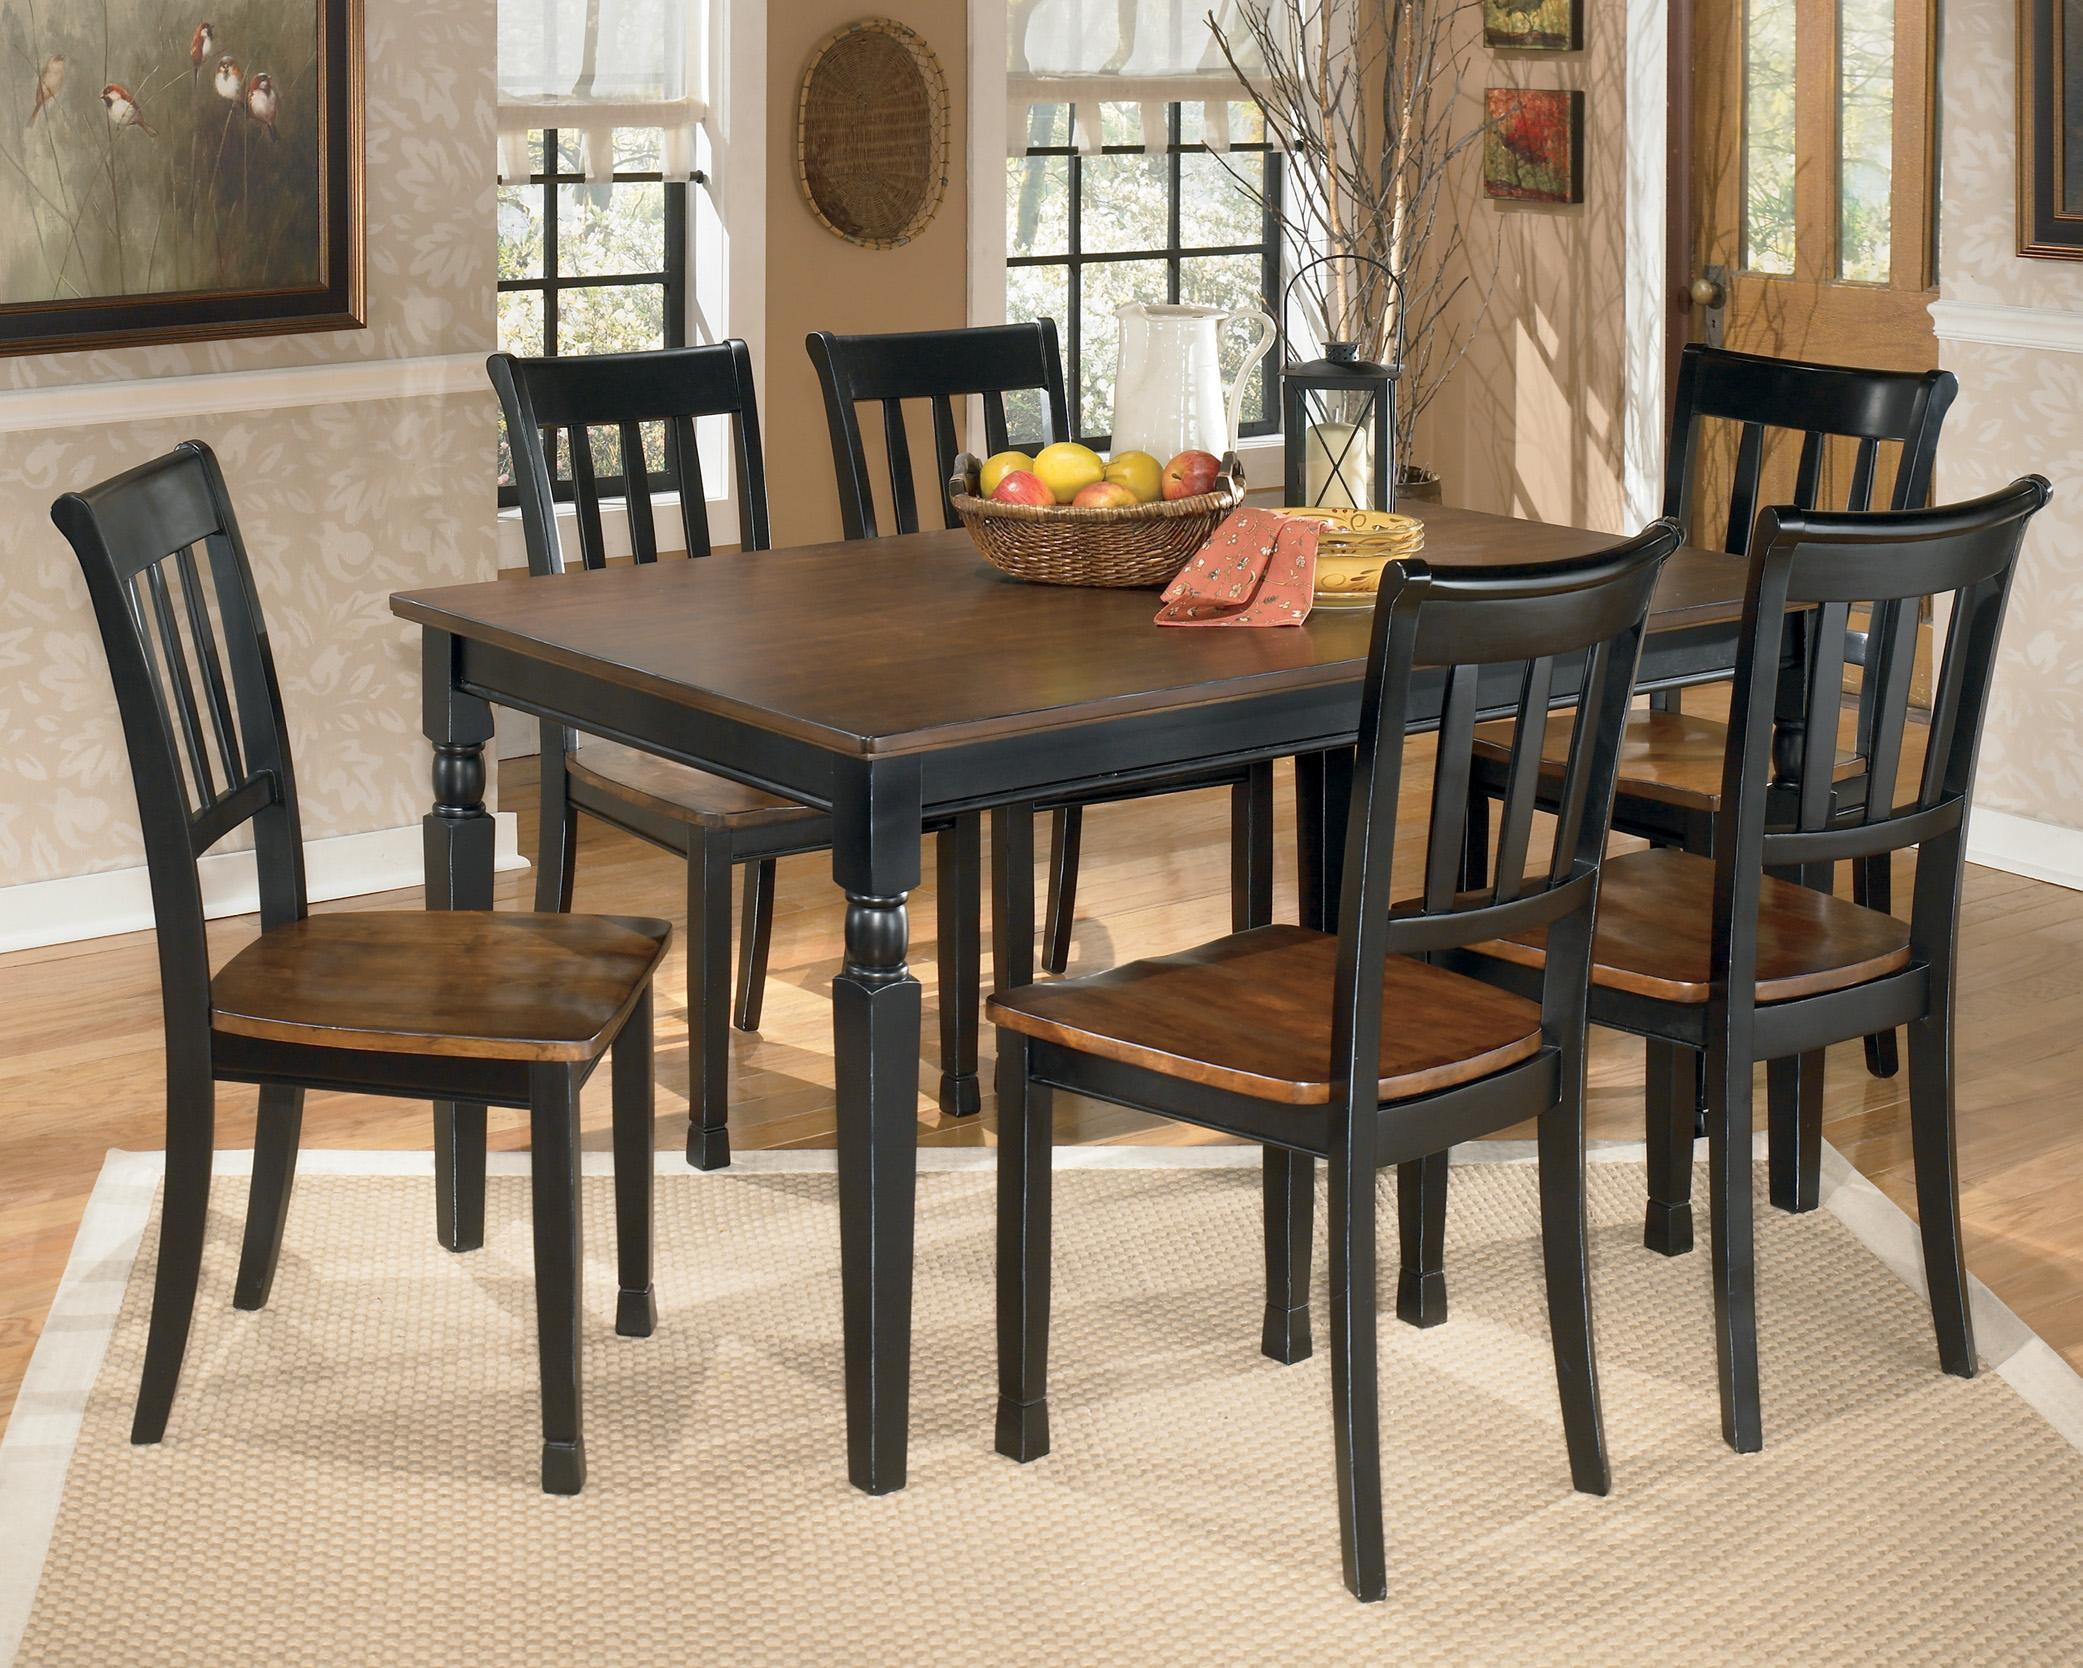 7 piece rectangular dining table set